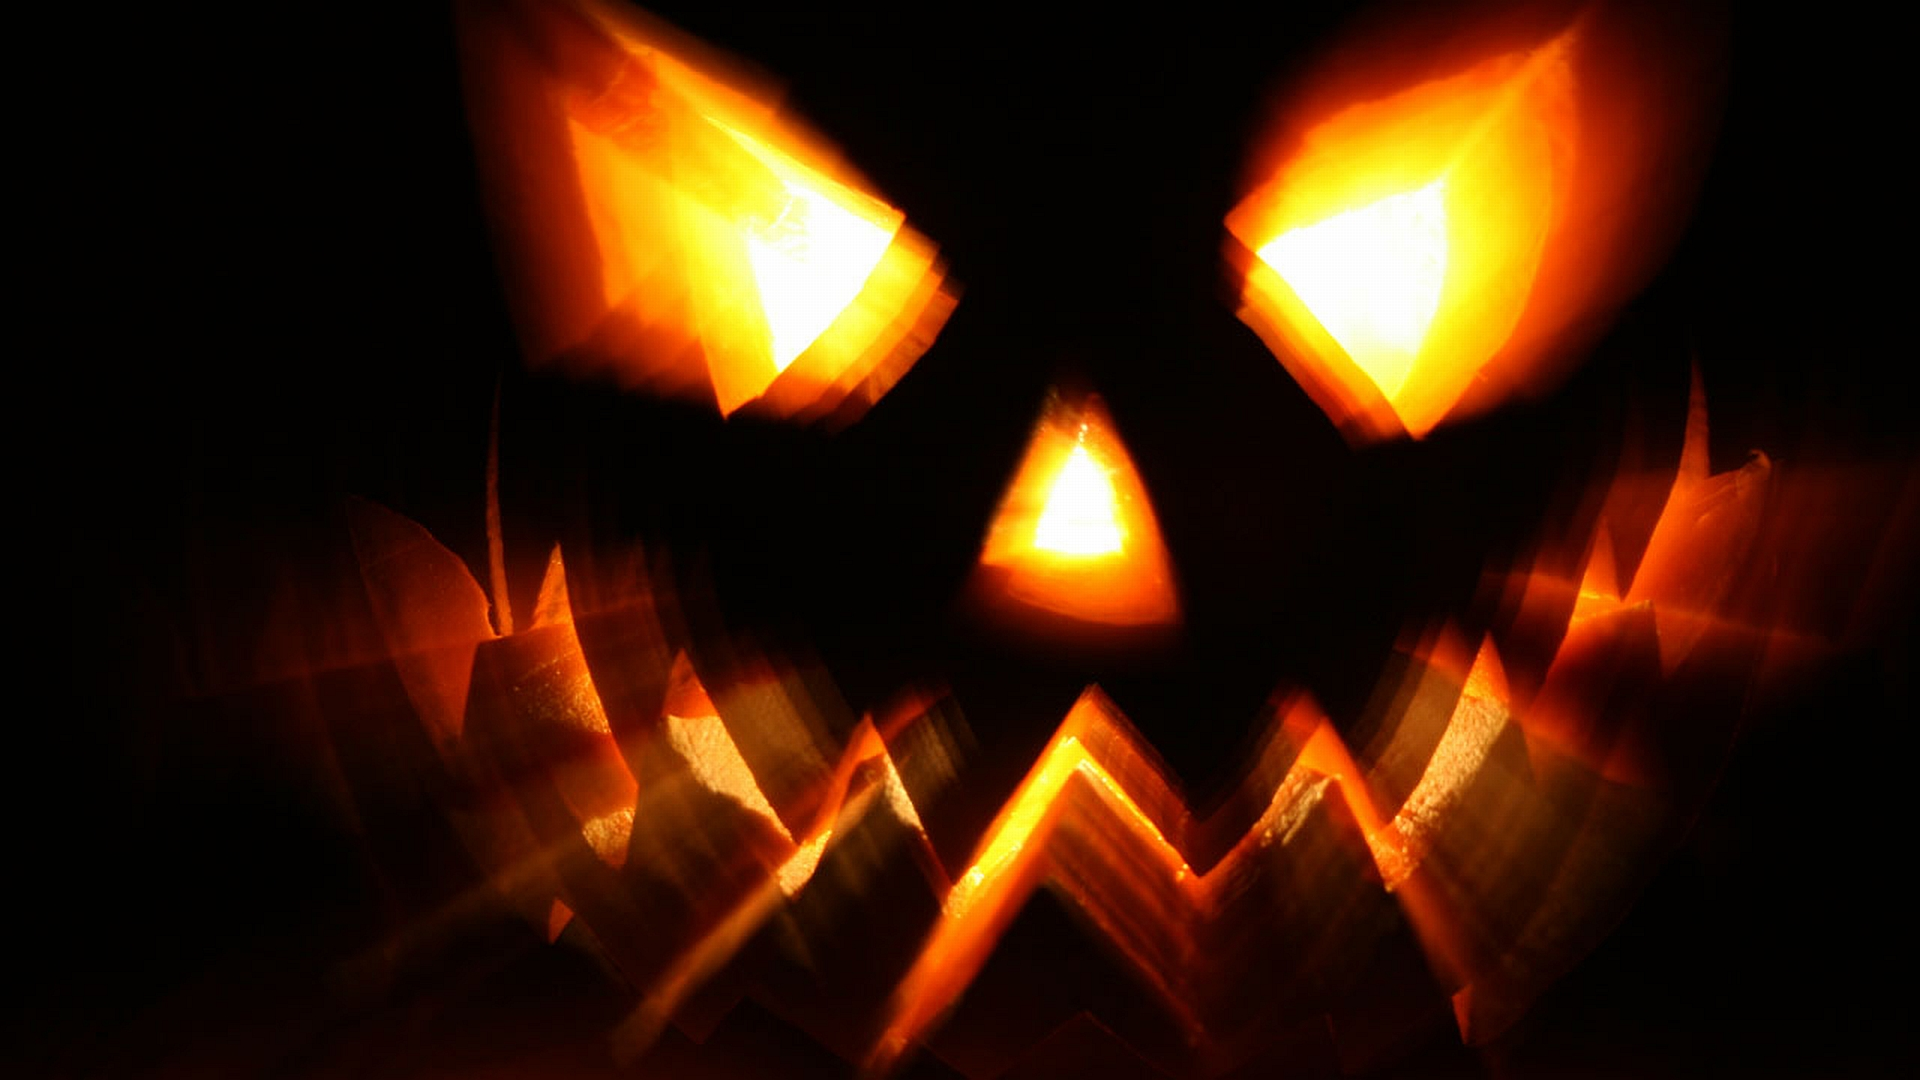 wallpapers clubs free halloween - photo #37